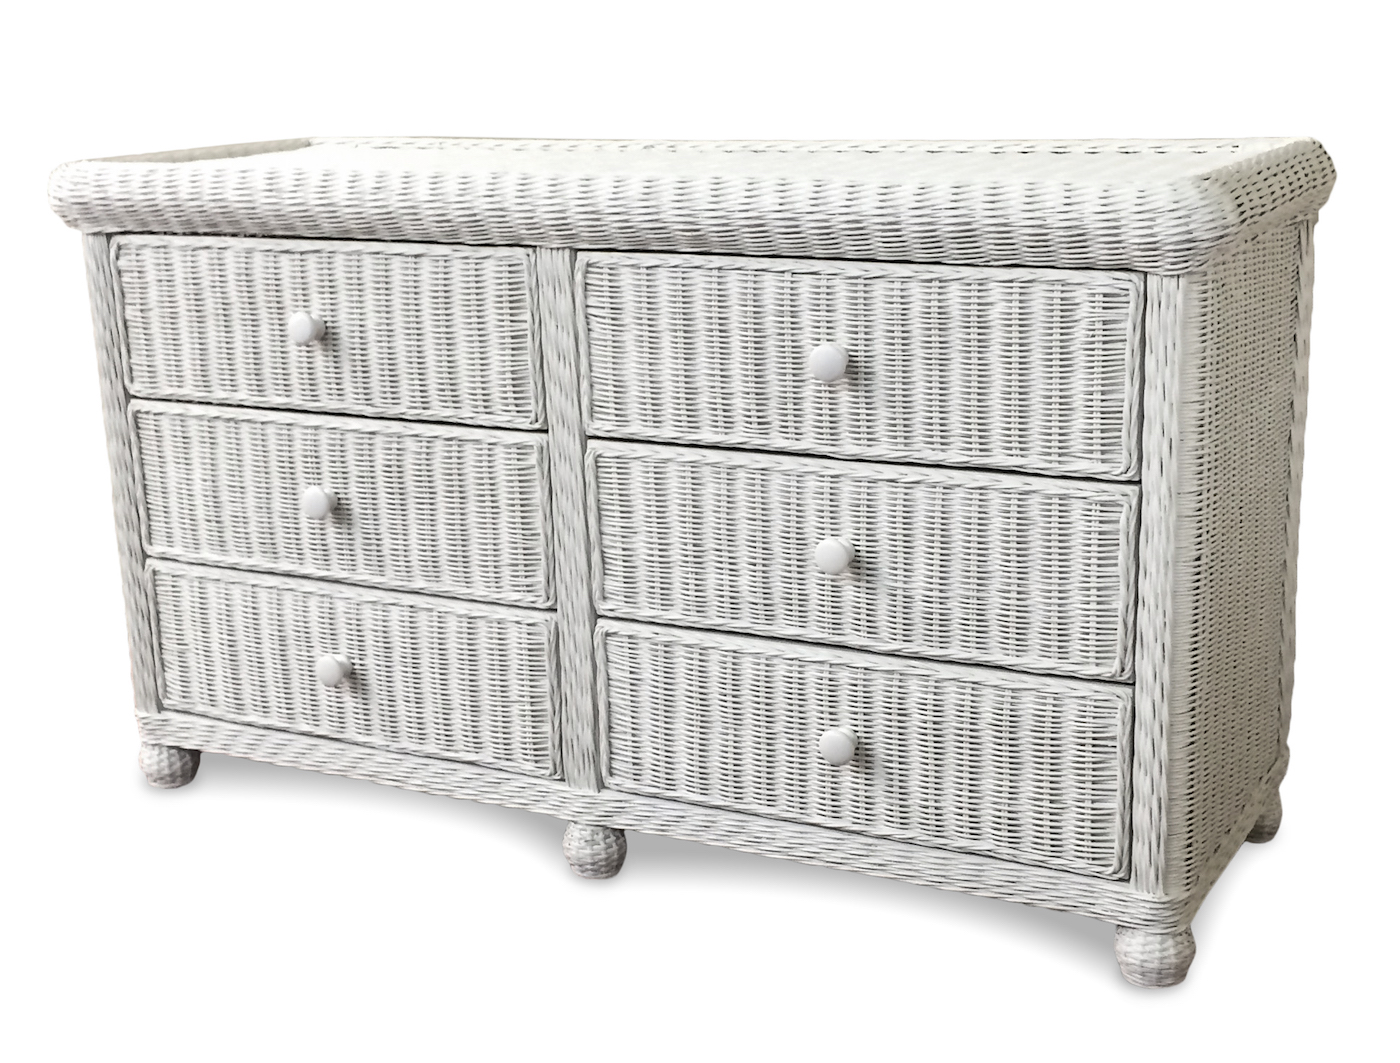 Wicker 6 drawer dresser elana wicker paradise White wicker bedroom furniture